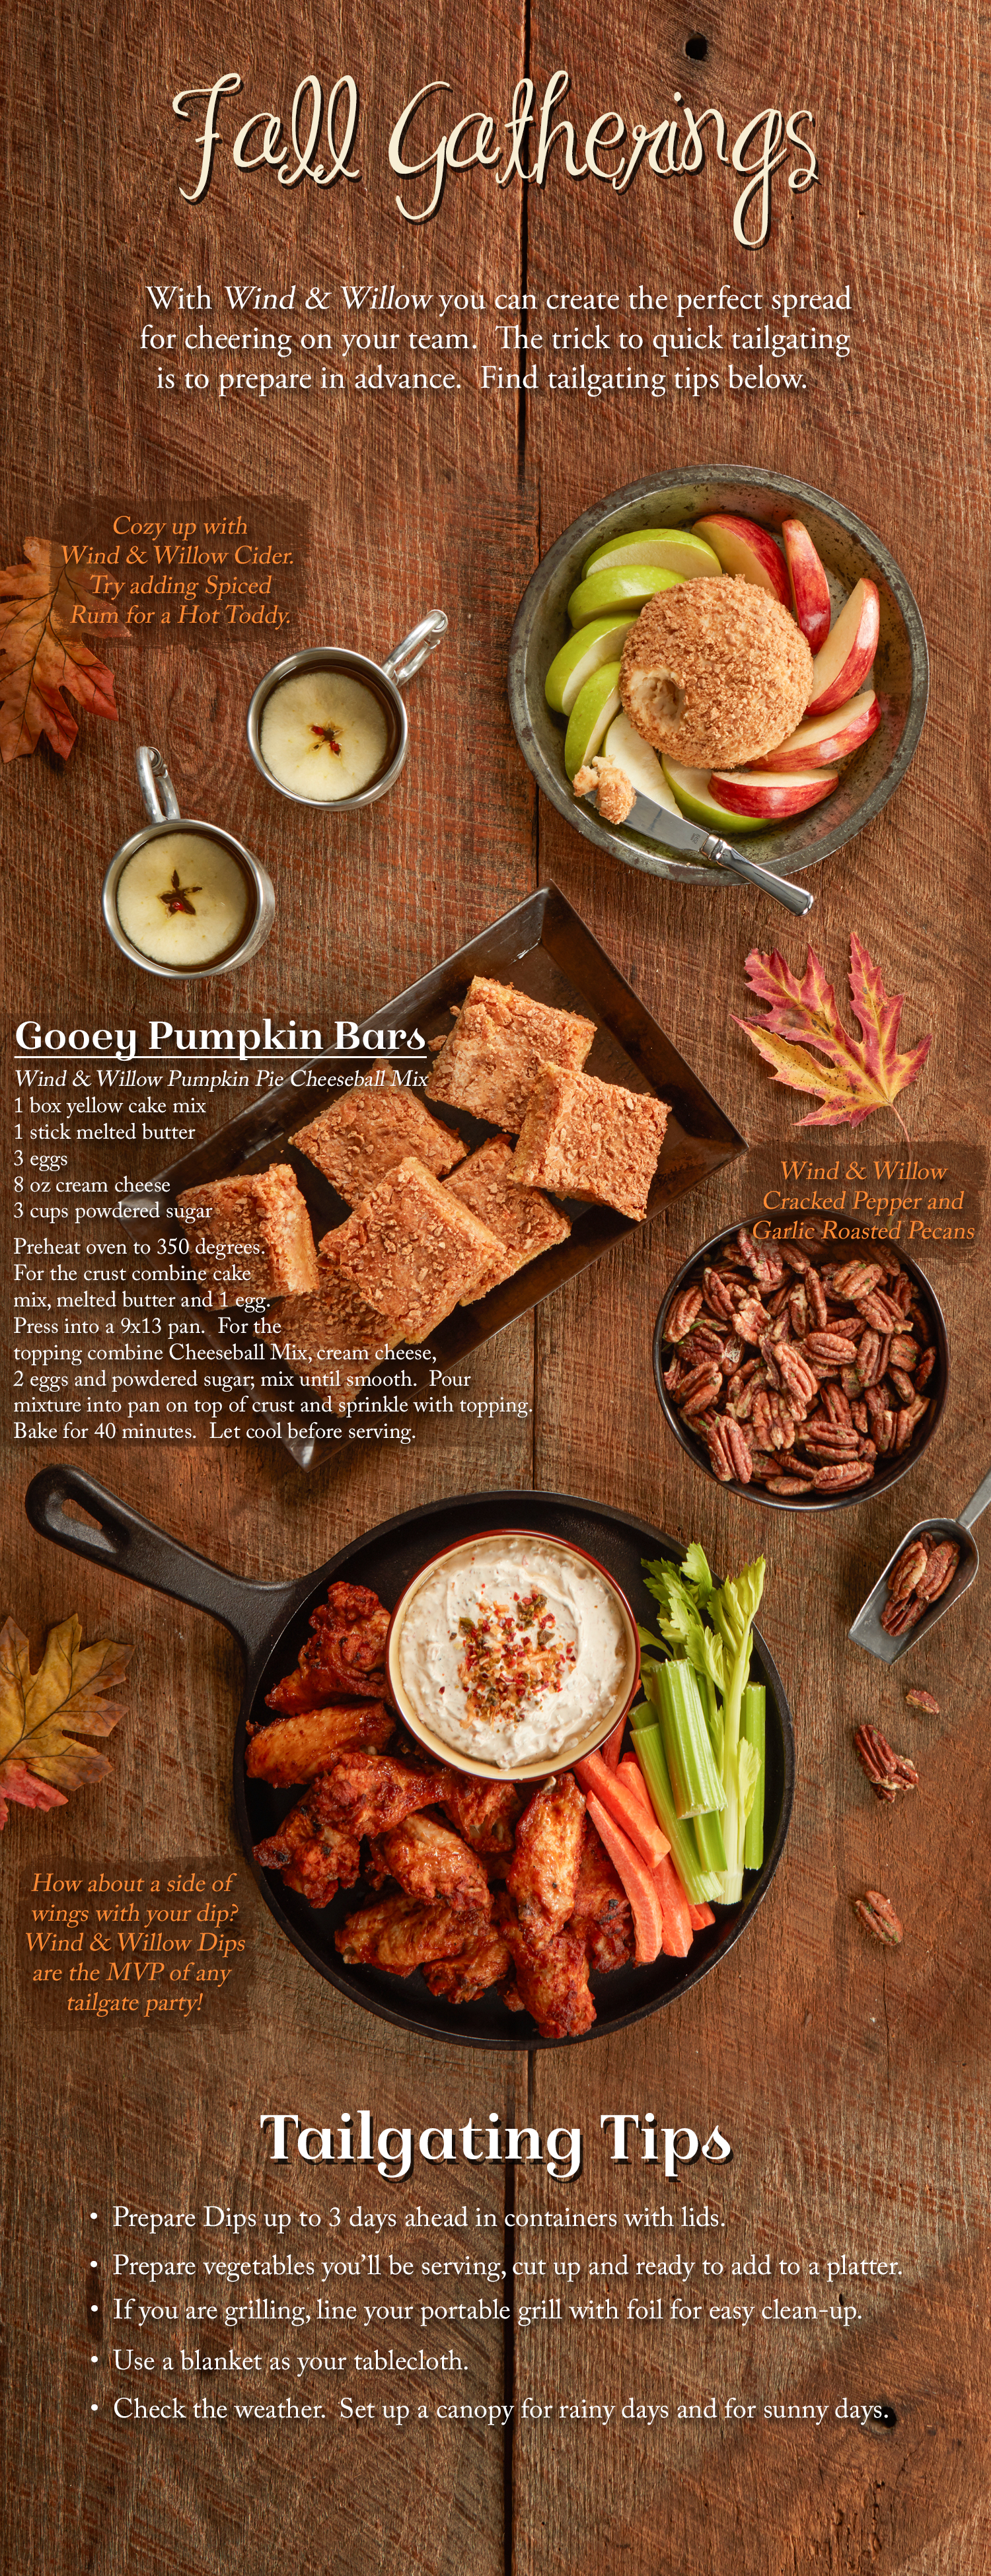 Fall gathering recipes ideas party entertaining